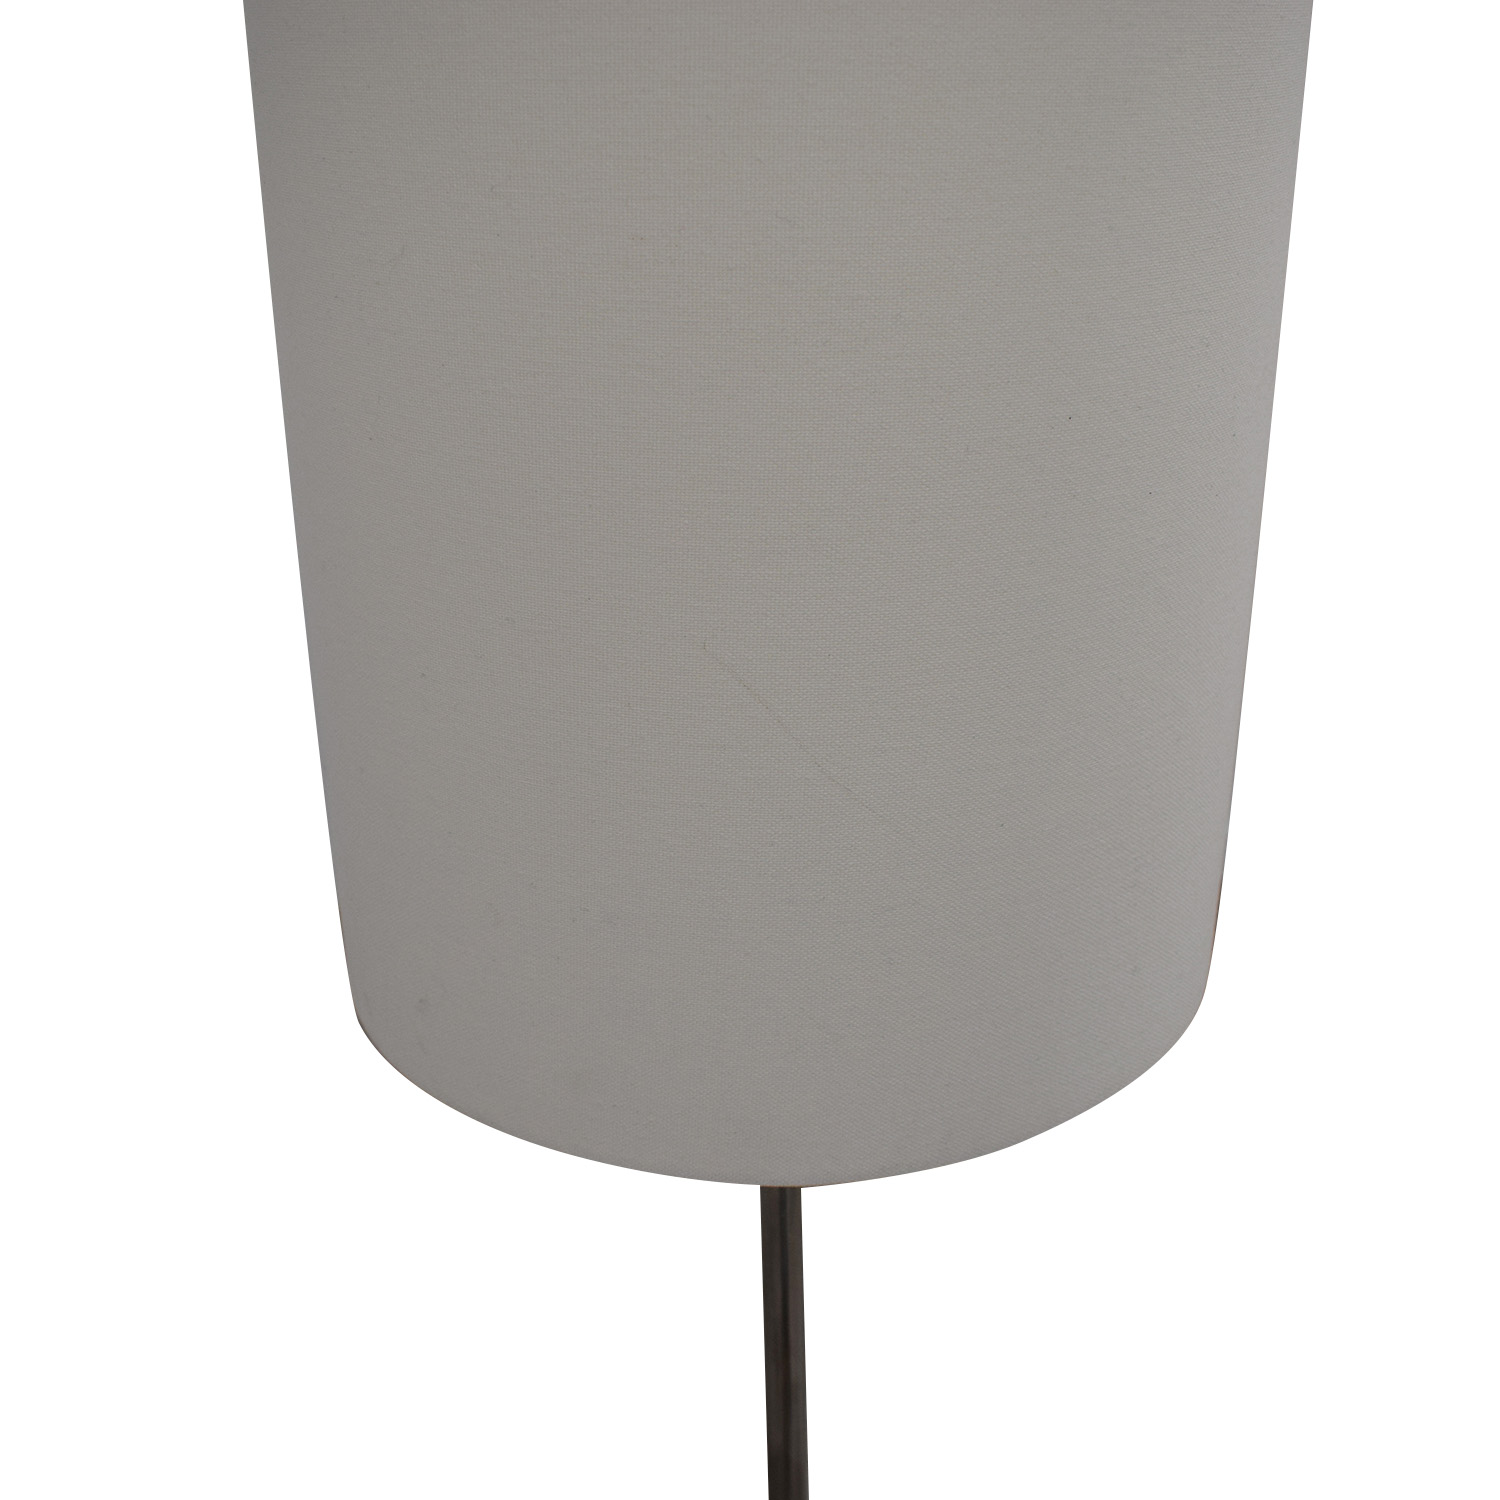 Crate & Barrel Tribeca Floor Lamp / Decor